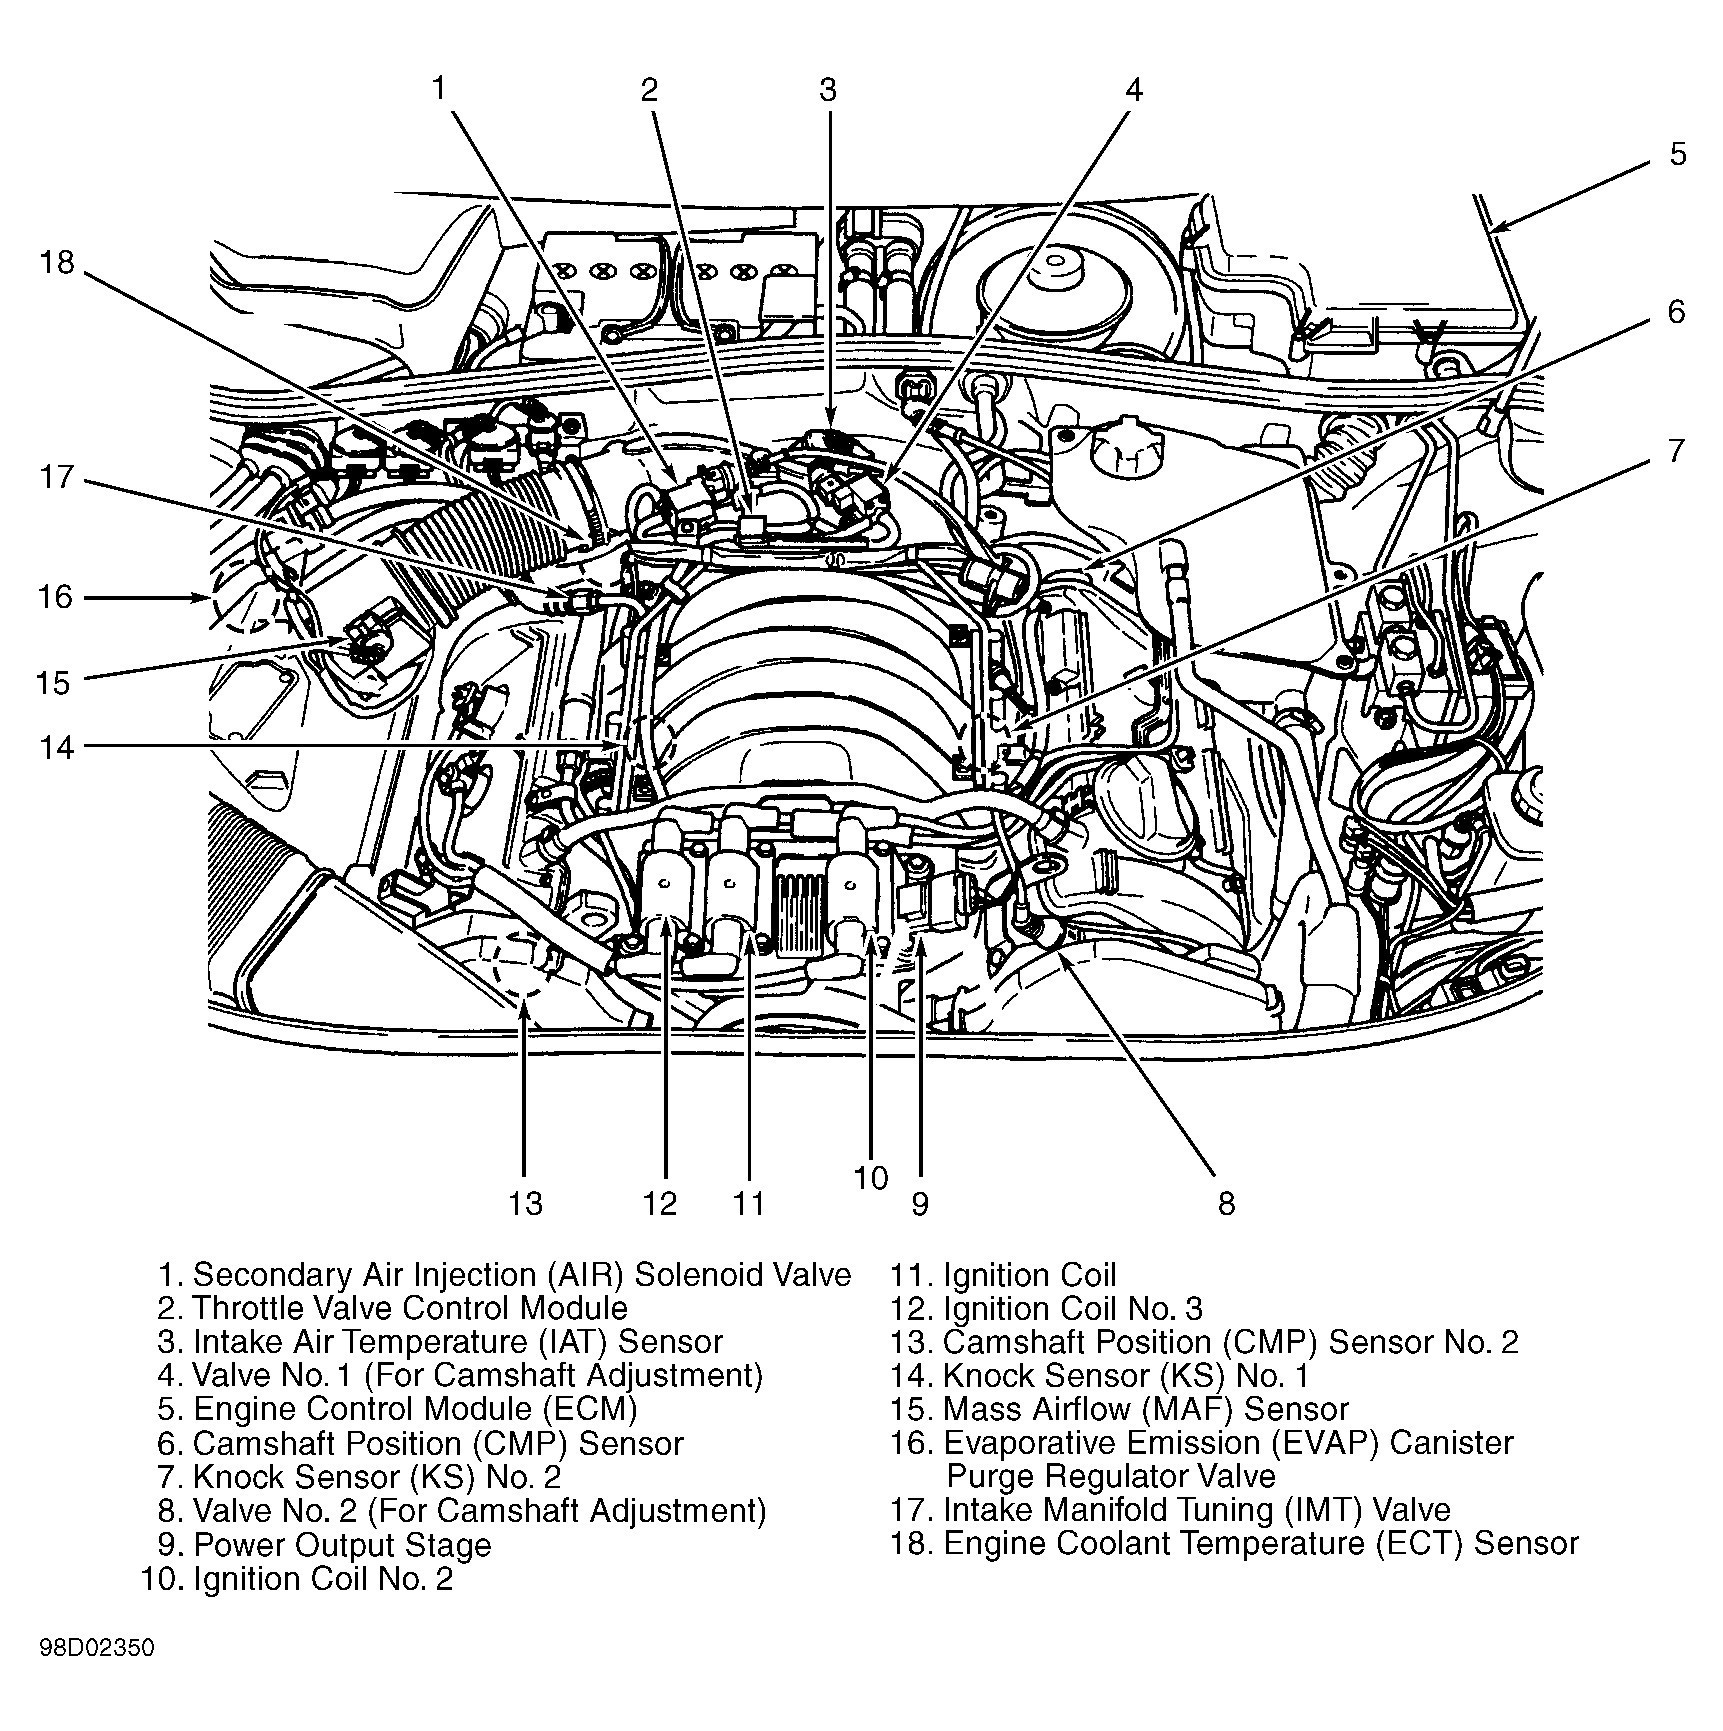 2000 Dodge Intrepid 2 7 Engine Diagram My Wiring Diagram